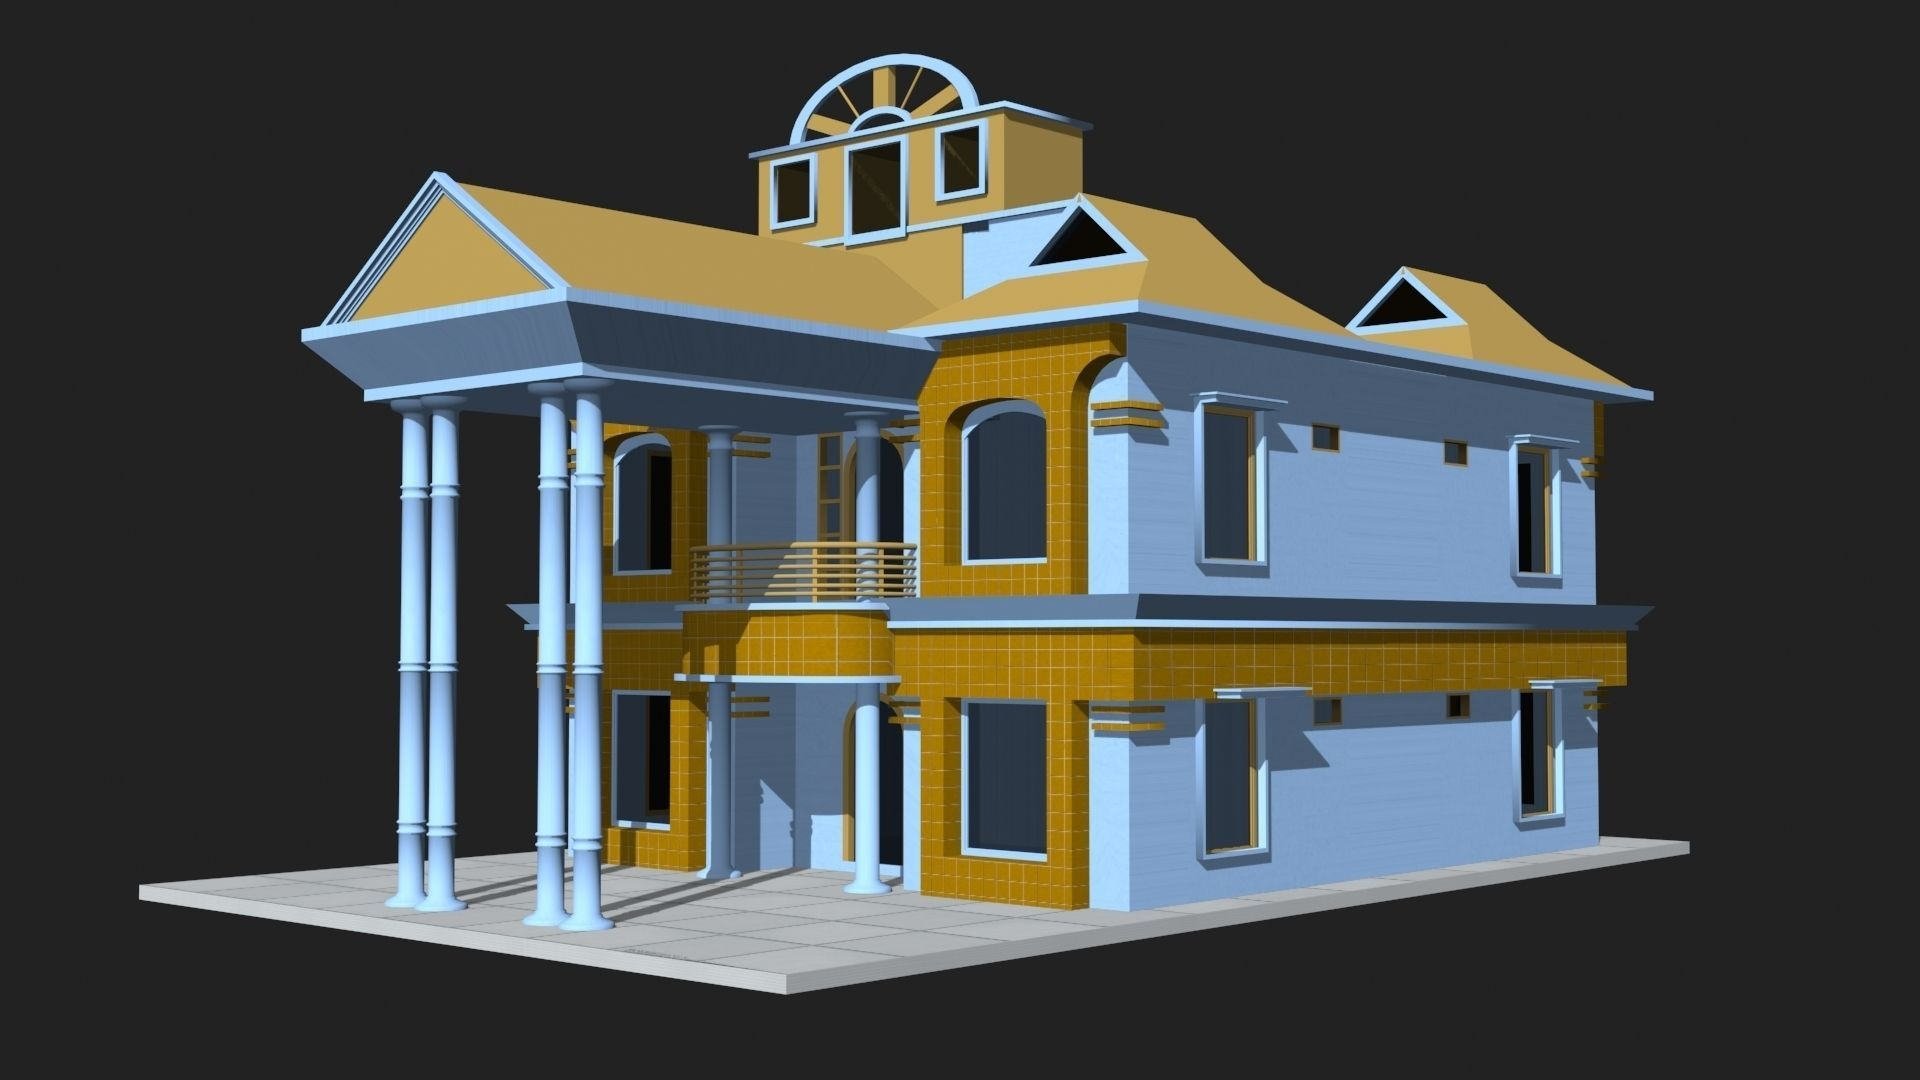 3d model 3d house building vr ar low poly for Build house online 3d free